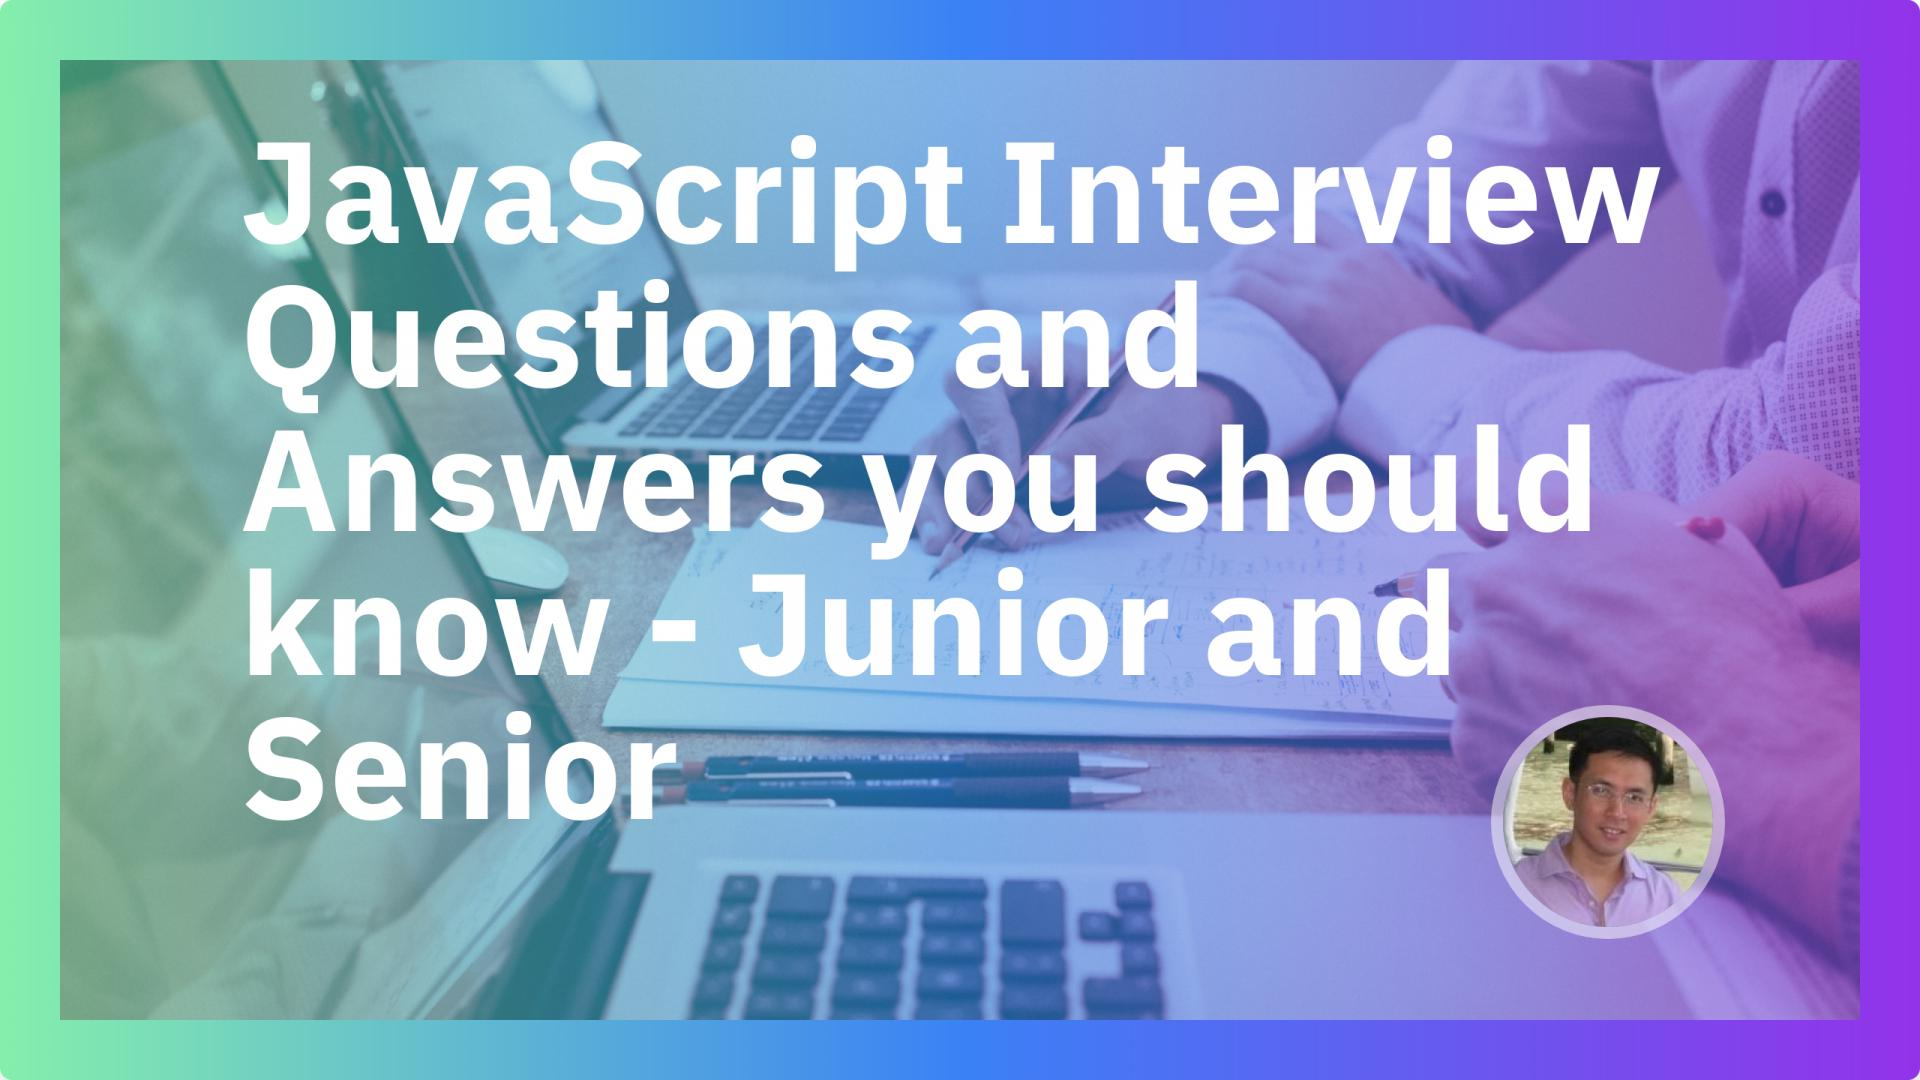 JavaScript Interview Questions and Answers you should know - Junior and Senior